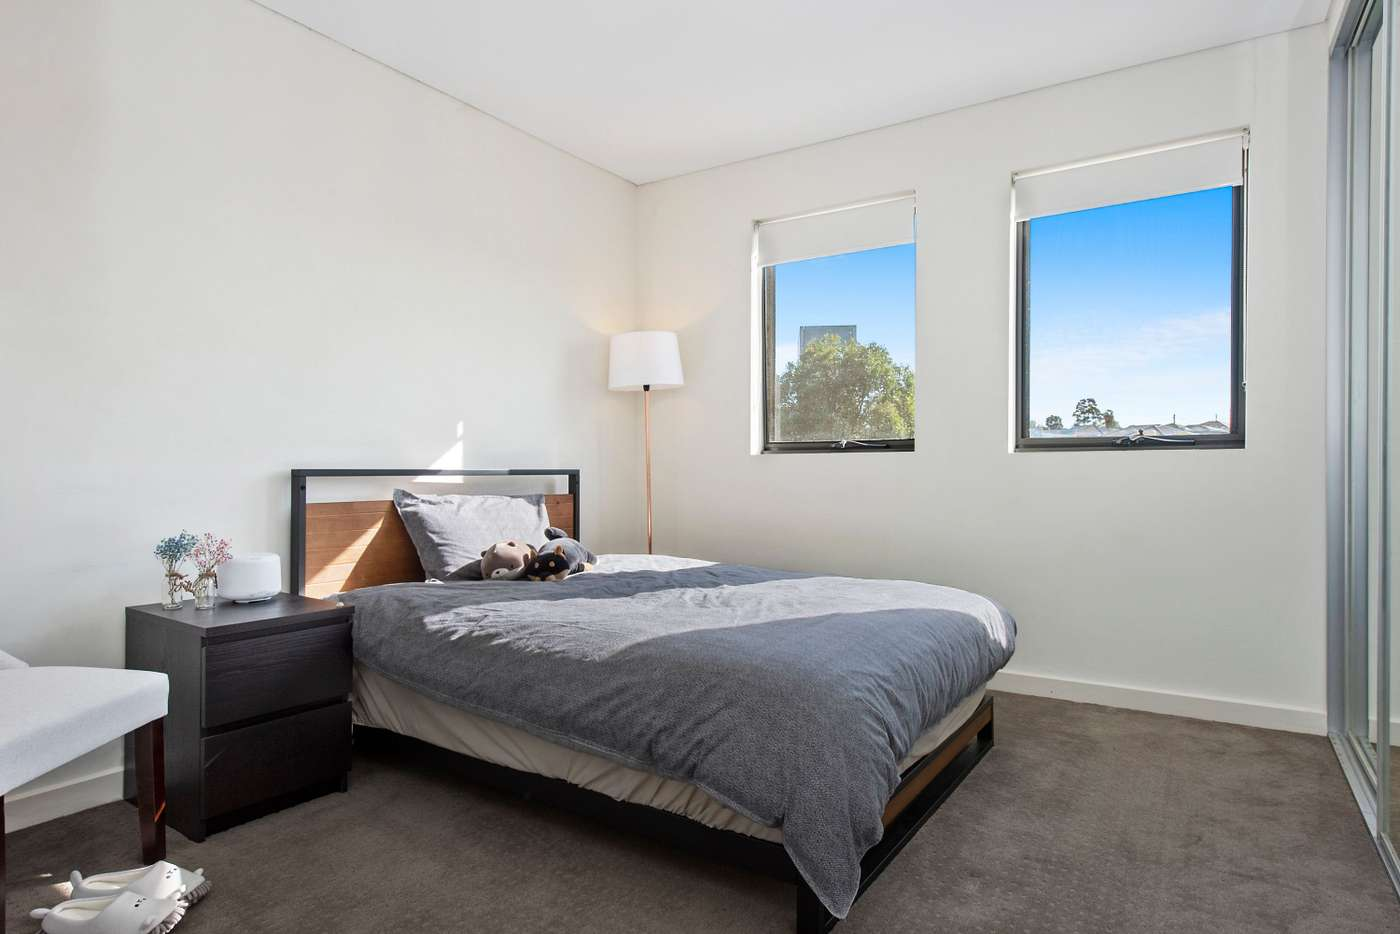 Fifth view of Homely townhouse listing, 24/2 McCausland Place, Kellyville NSW 2155